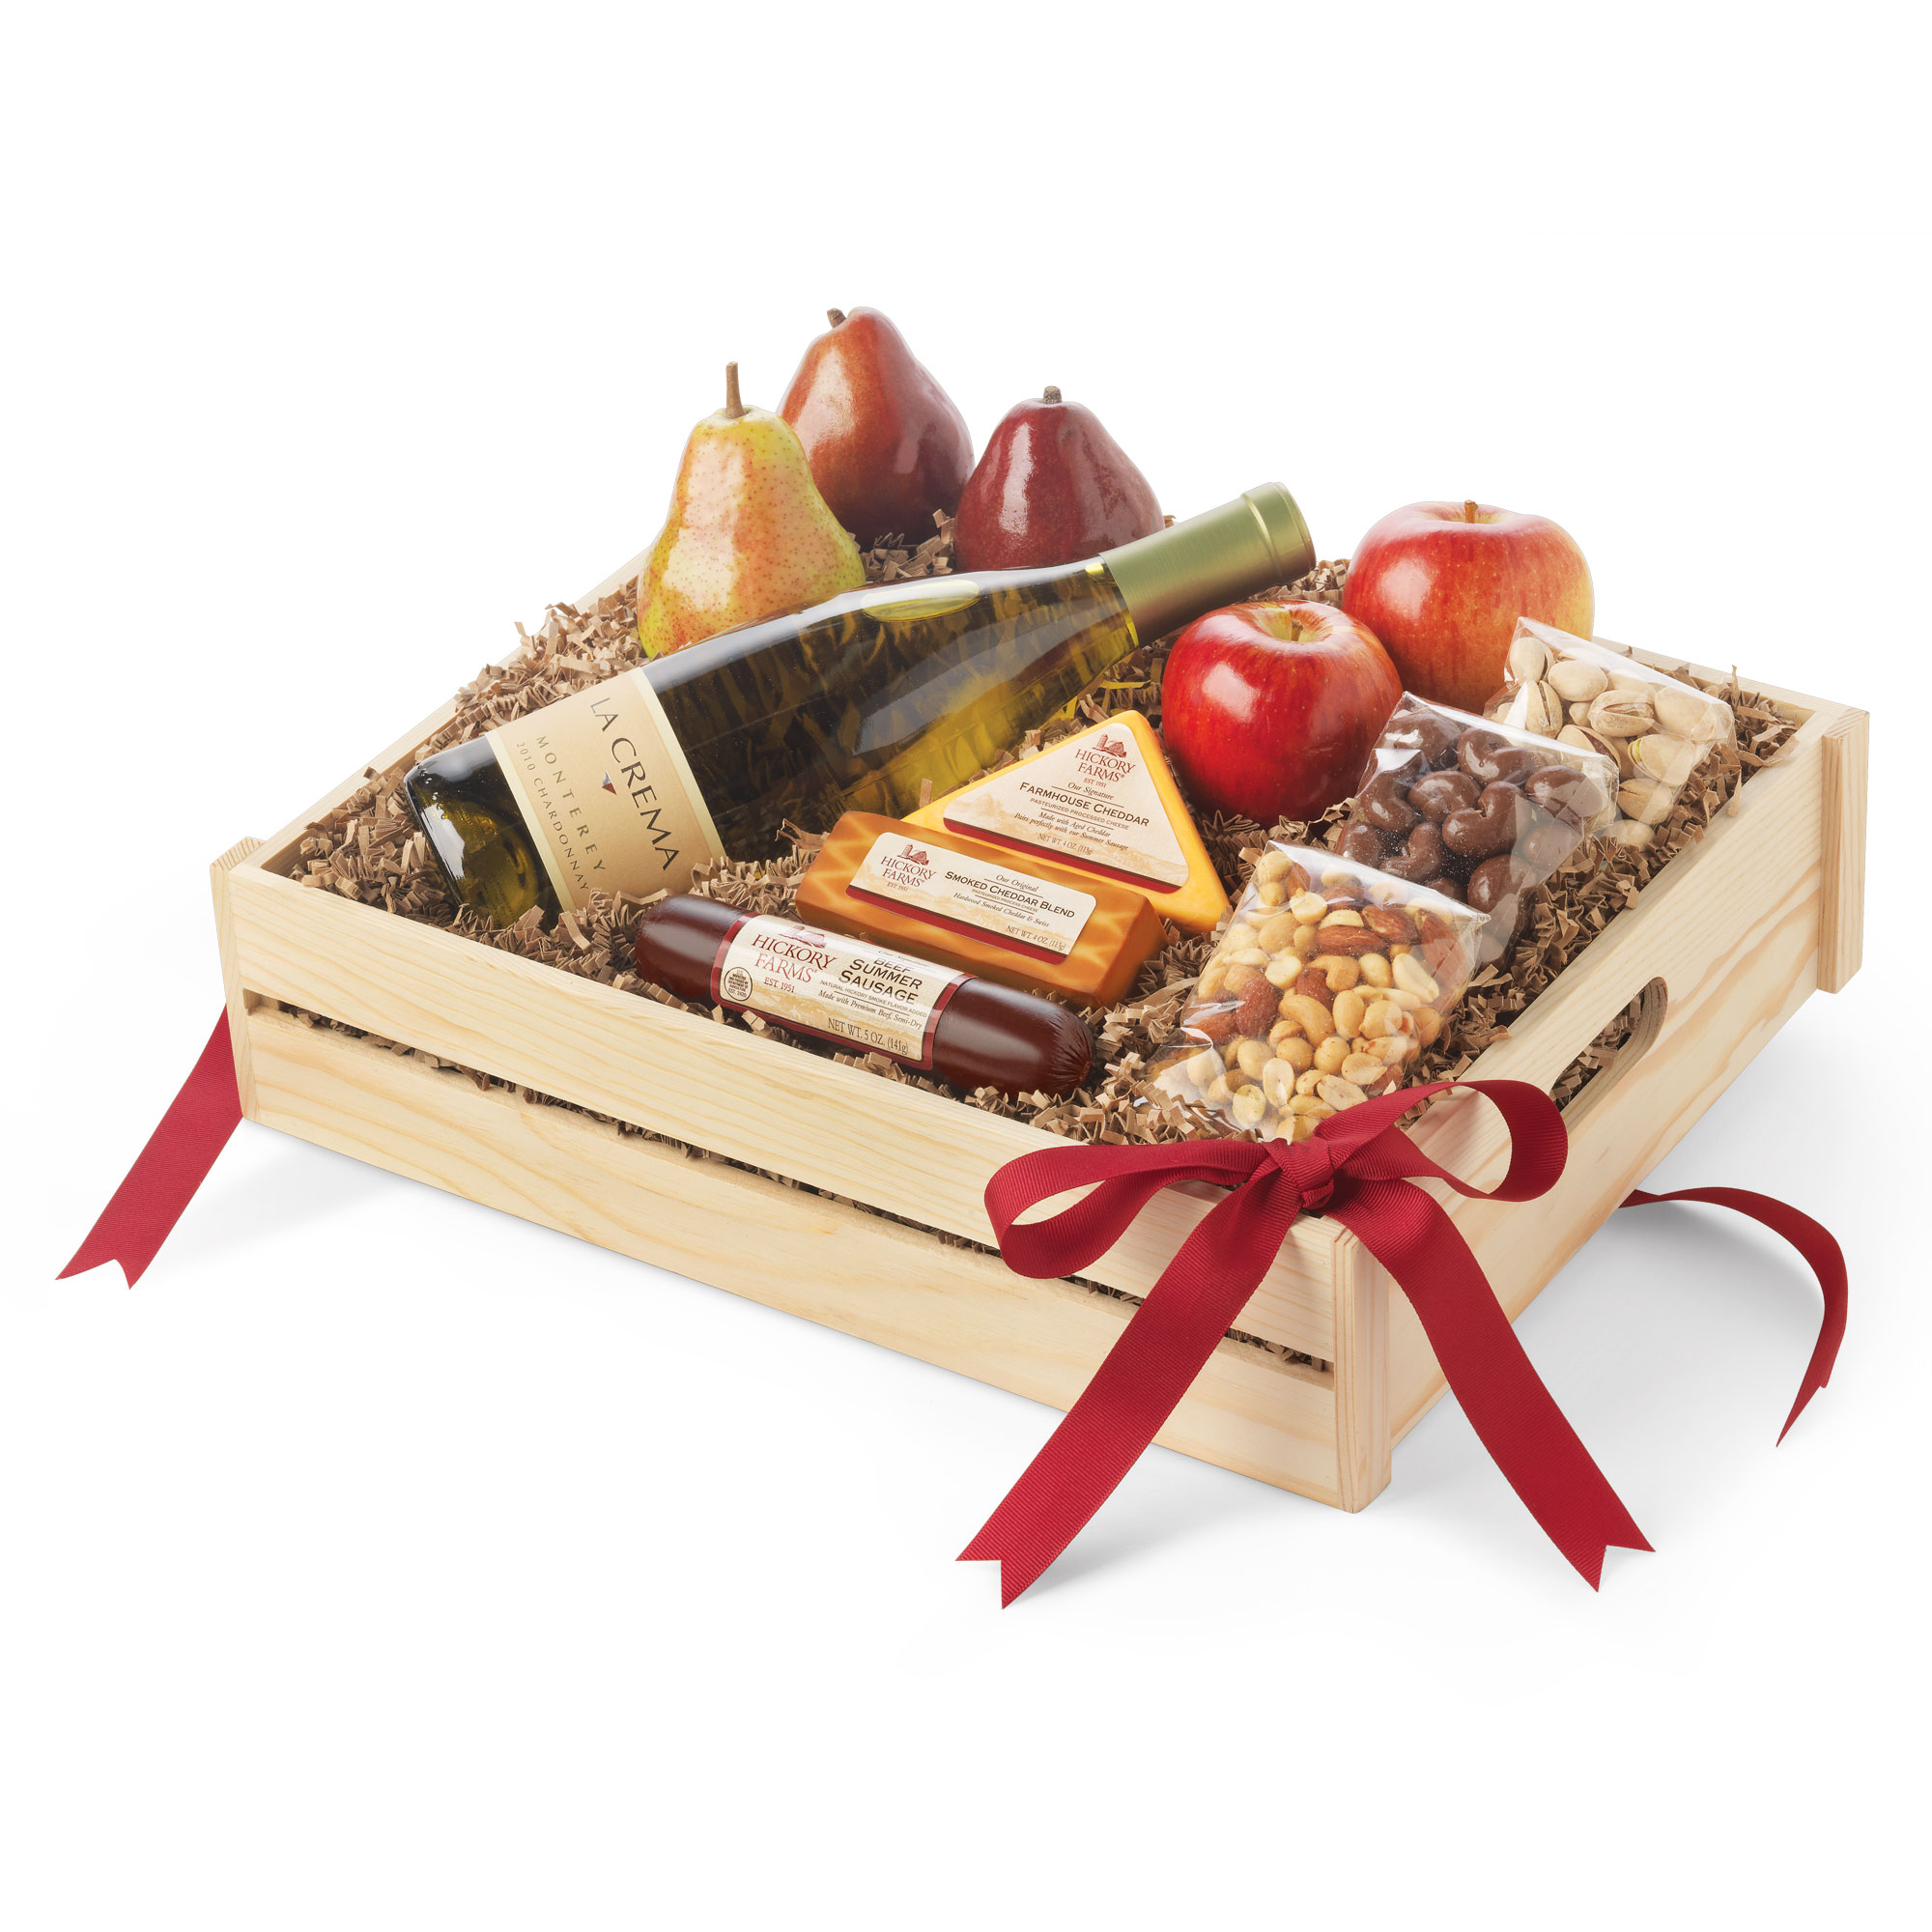 Hickory Farms Toast the Traditions Gift Box, wine, fruit, cheese, sausage, nuts